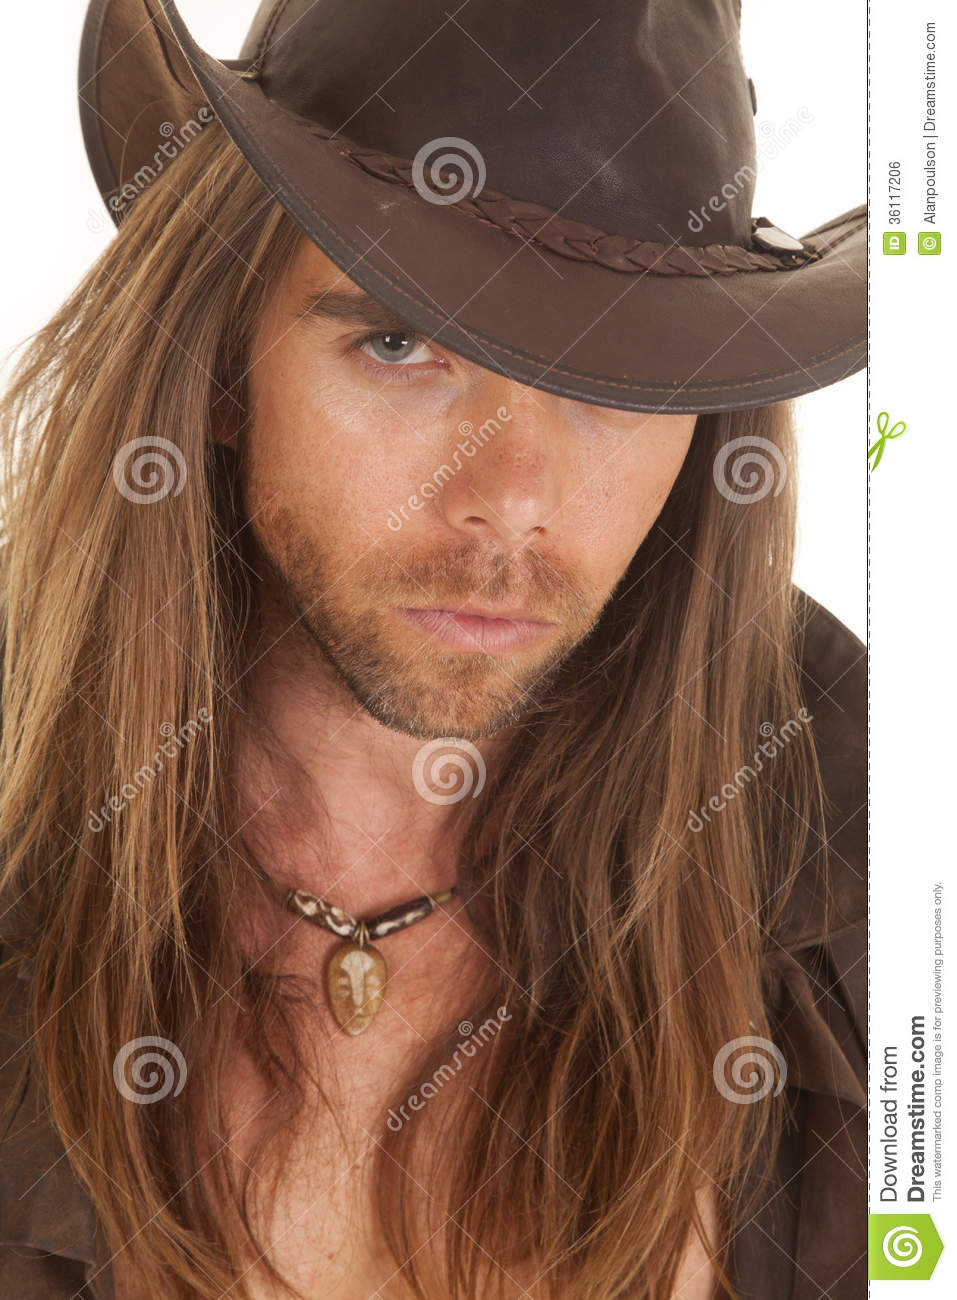 b41cc6b3a4c02 Cowboy Long Hair Close Serious Stock Photo - Image of handsome ...